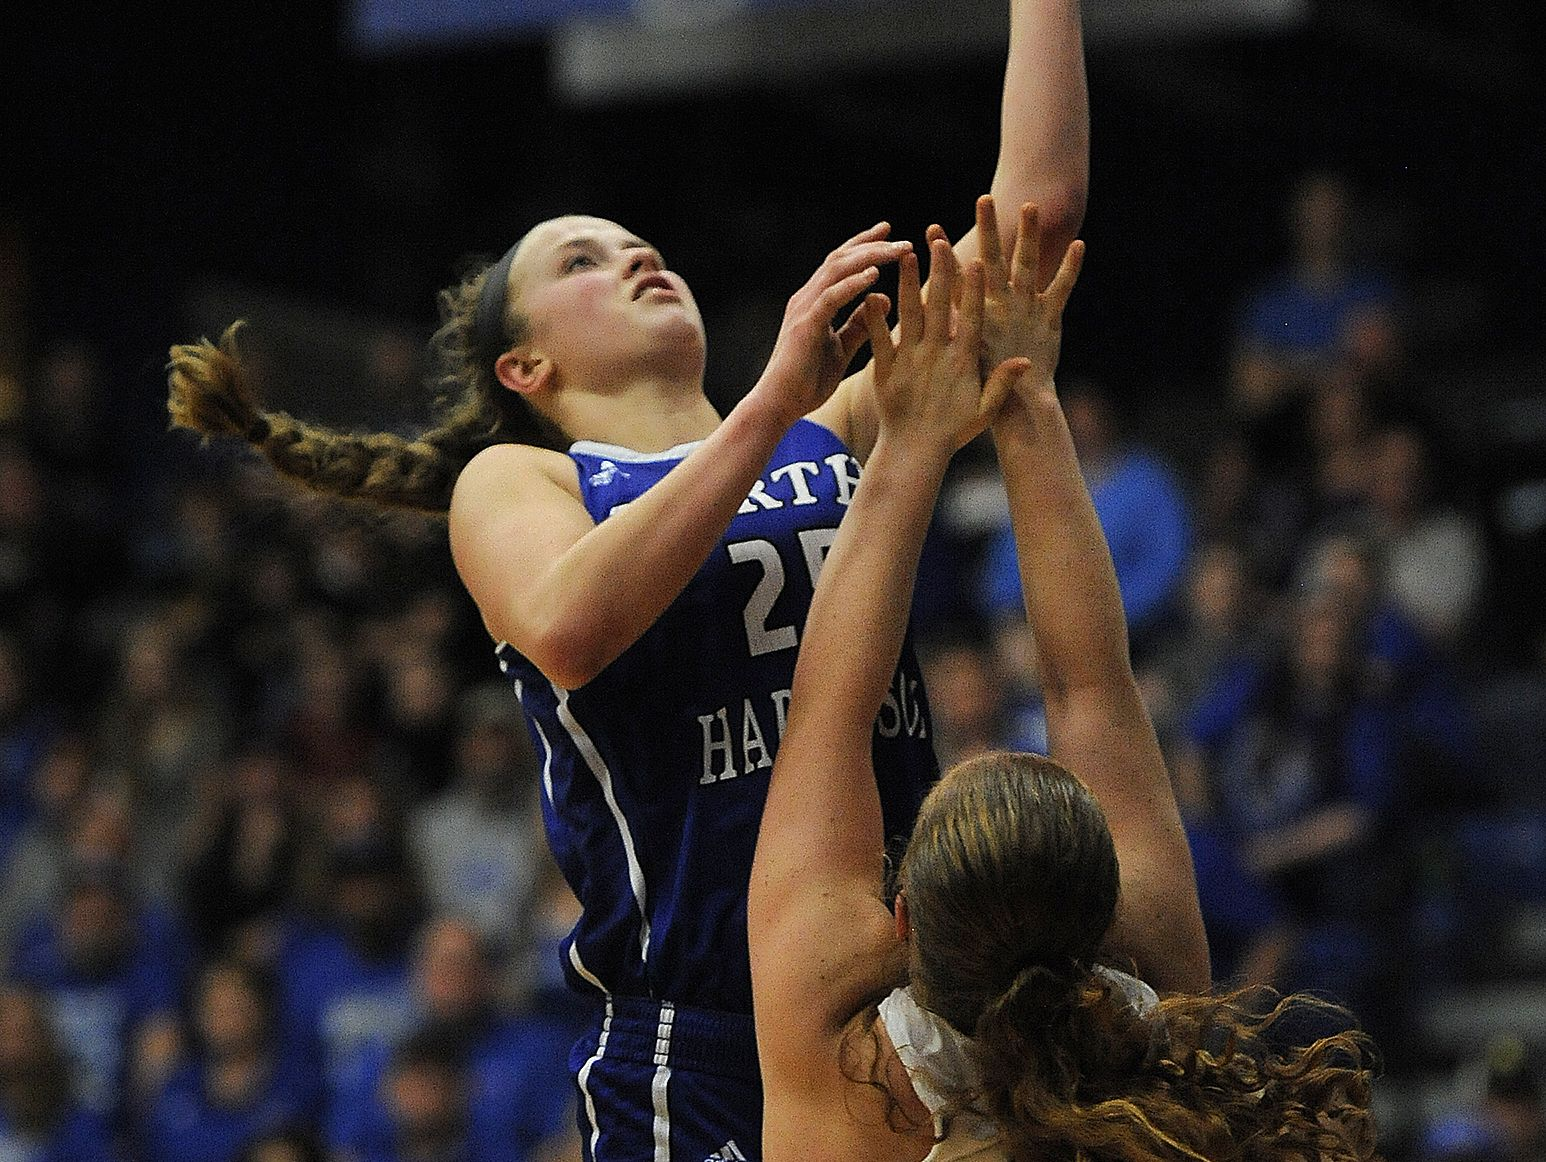 North Harrison's Cali Nolot (left) shoots against Rushville's Alisha Markley (22) on Saturday during the Regional #8 semi-final game #2 at Charlestown High School. North Harrison won 58-42. (Photo by David Lee Hartlage, Special to The Courier-Journal) Feb. 11, 2017